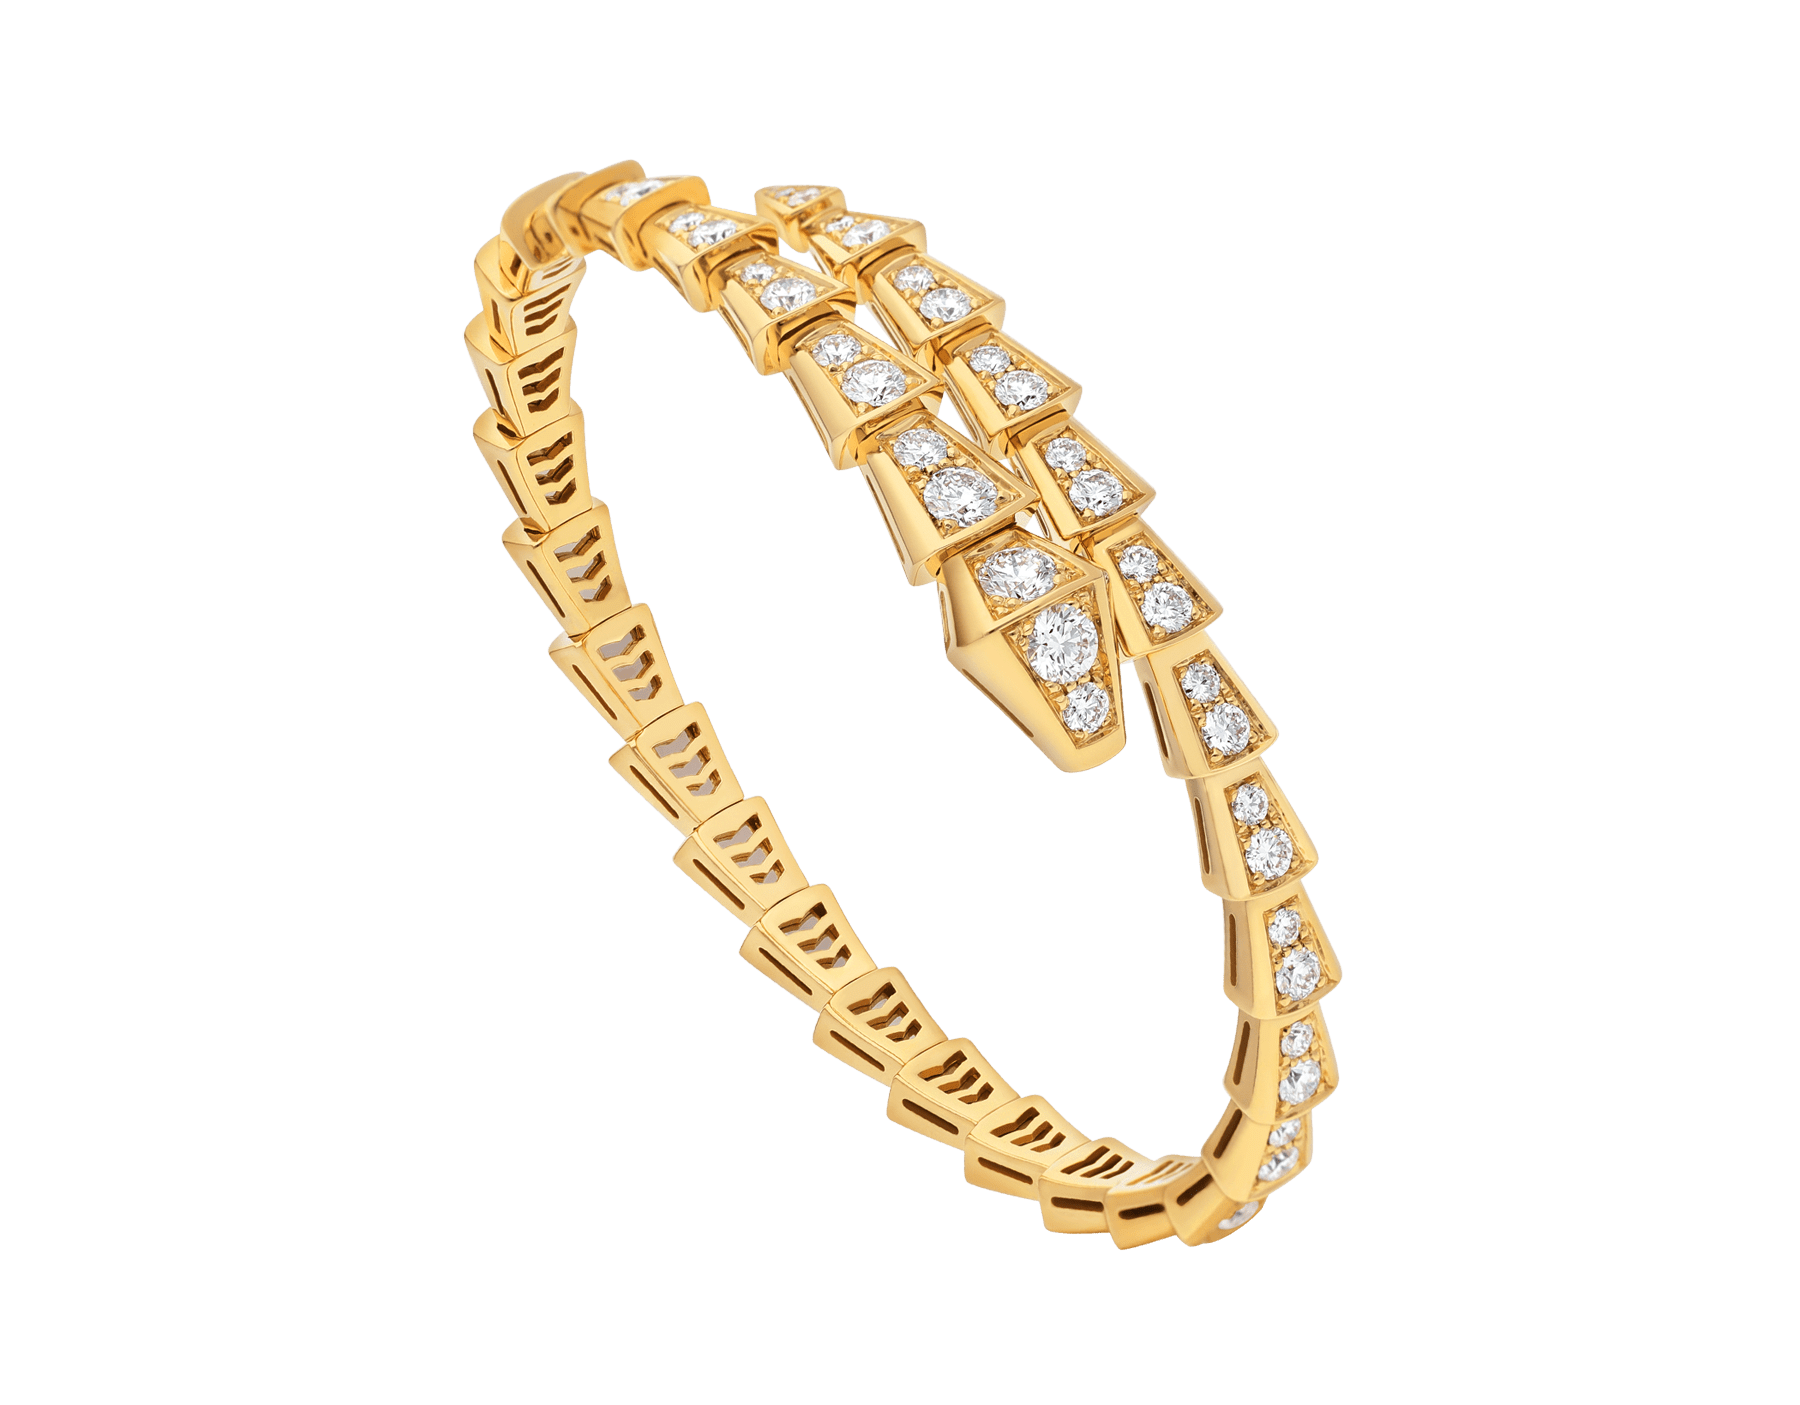 Serpenti Viper 18 kt yellow gold bracelet with pavé diamonds BR858983 image 1